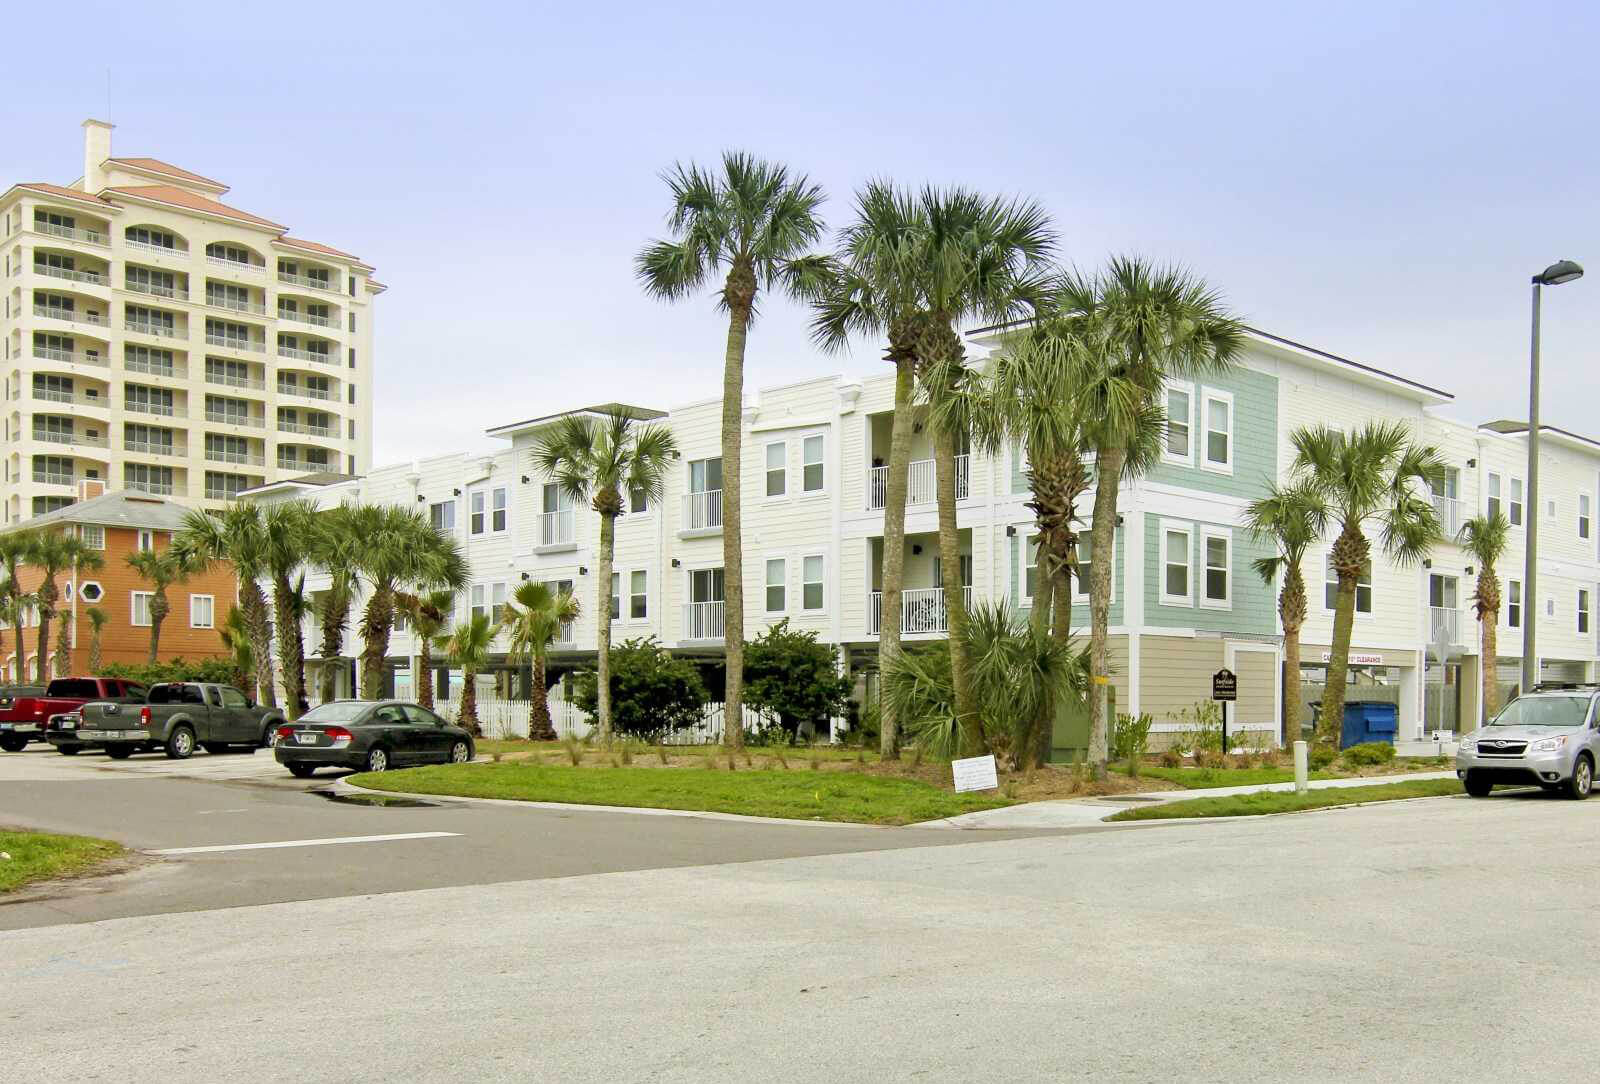 Surfside Apartments Jacksonville Beach Florida